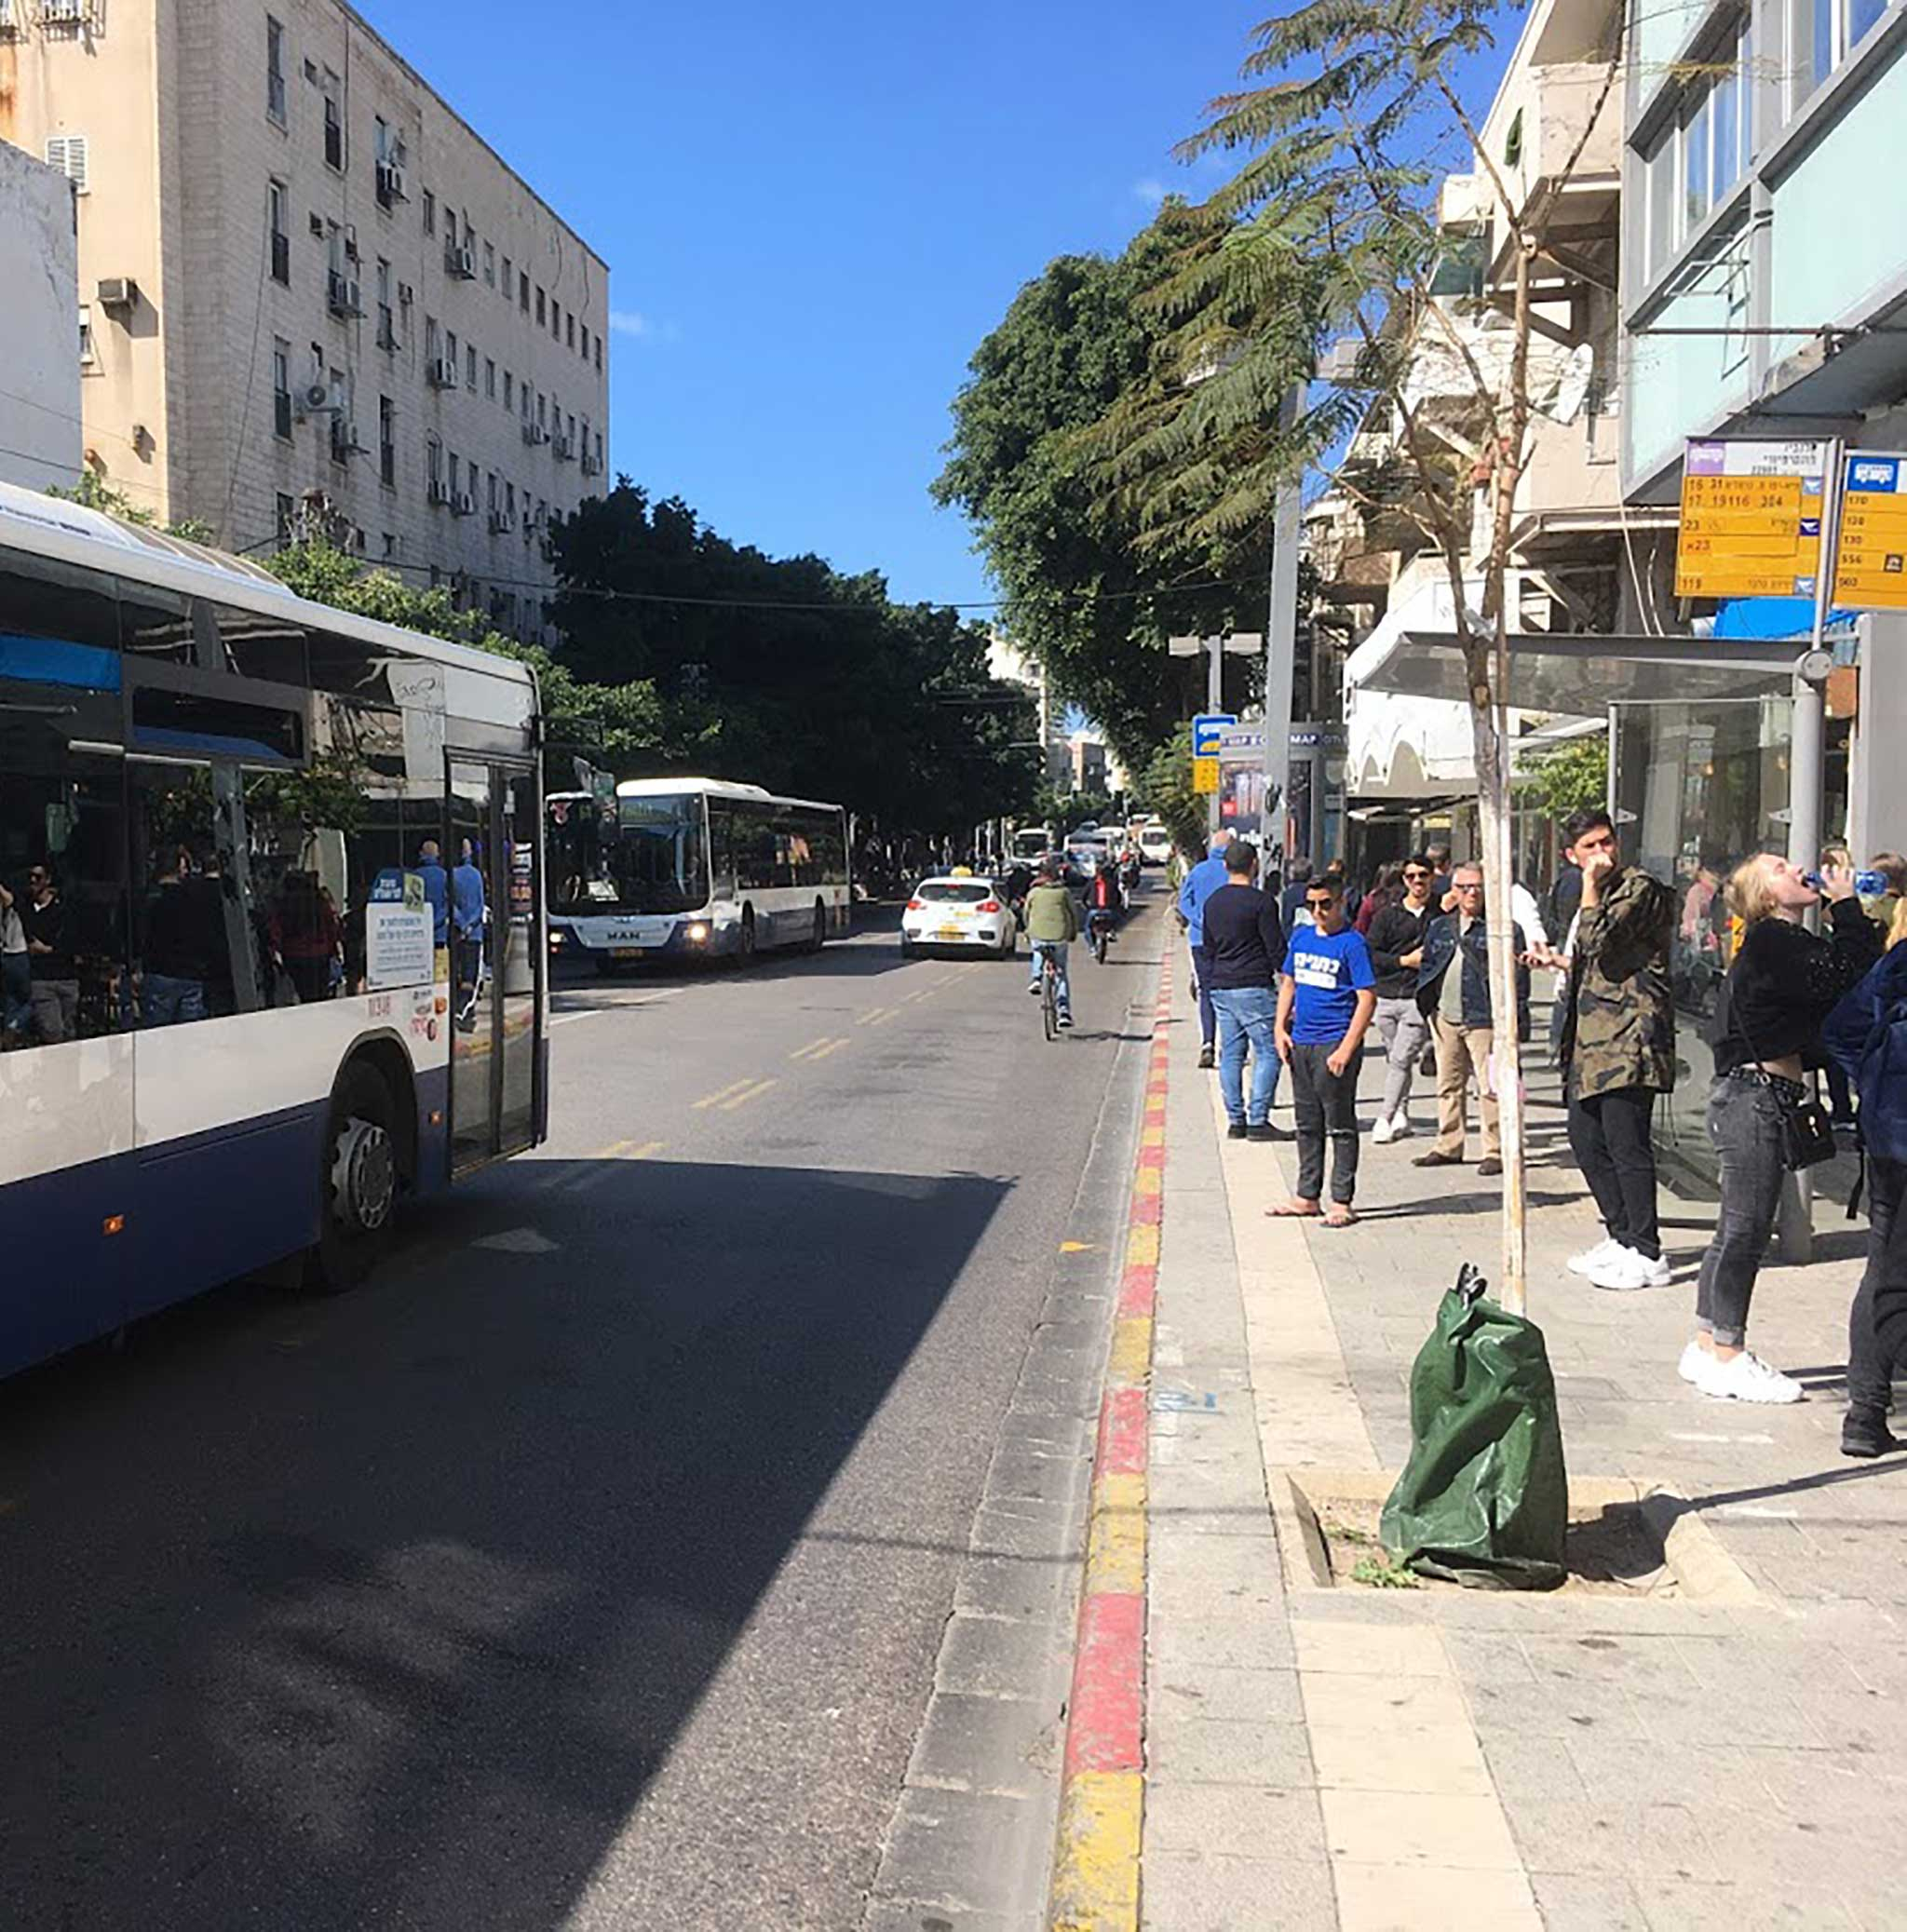 Allenby Street on Tel Aviv audio tour The Trail of Independence: Tracing the origins of modern Tel Aviv